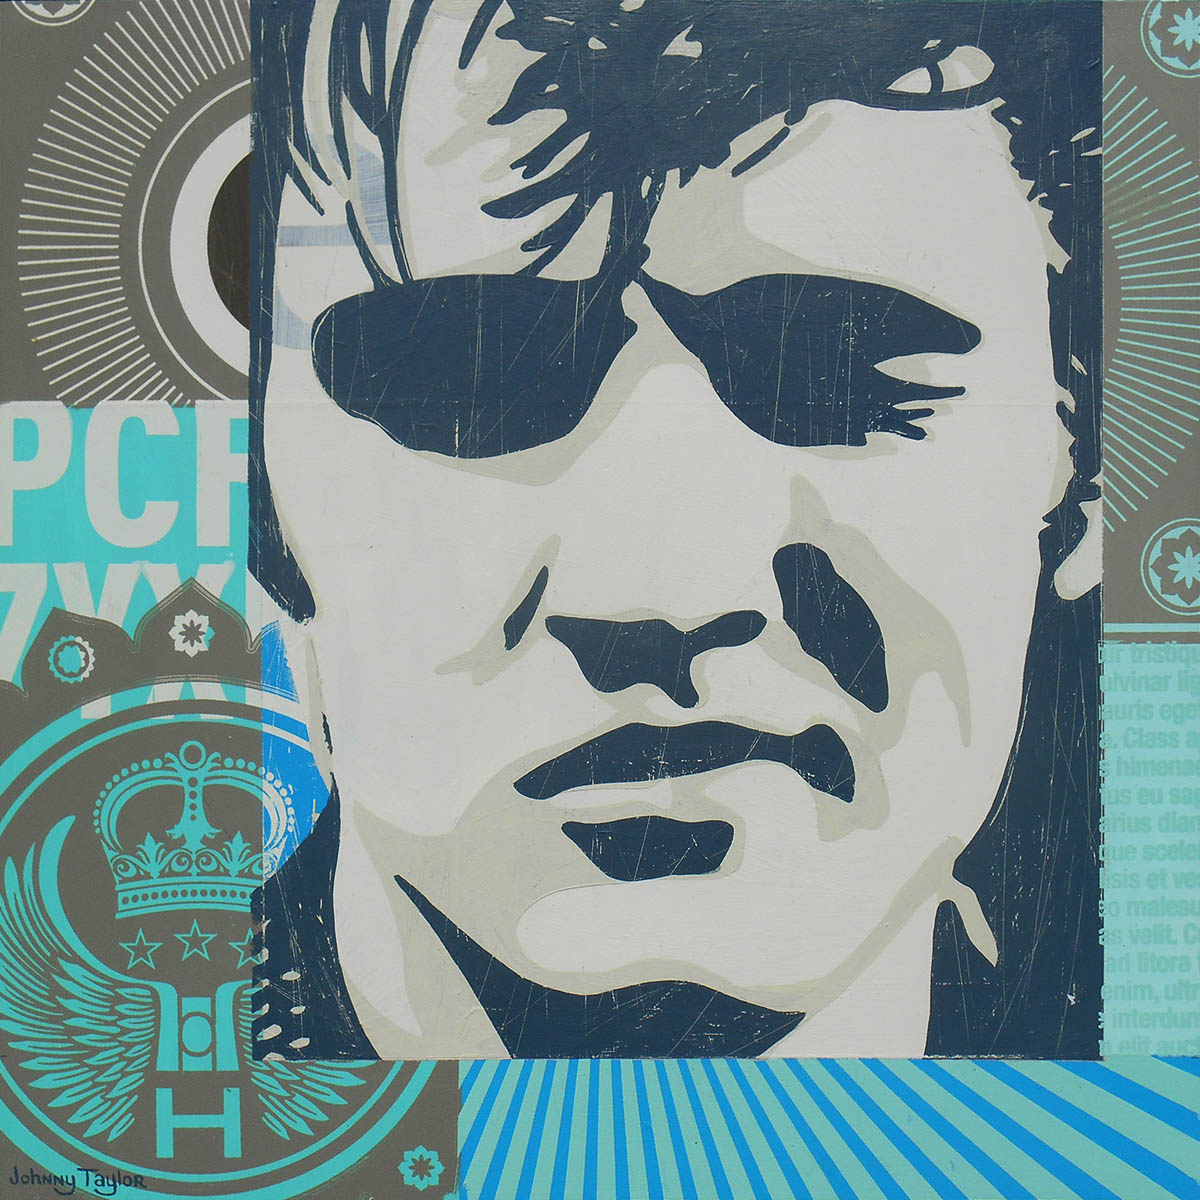 Pop Art portrait of Elvis Presley by Johnny Taylor